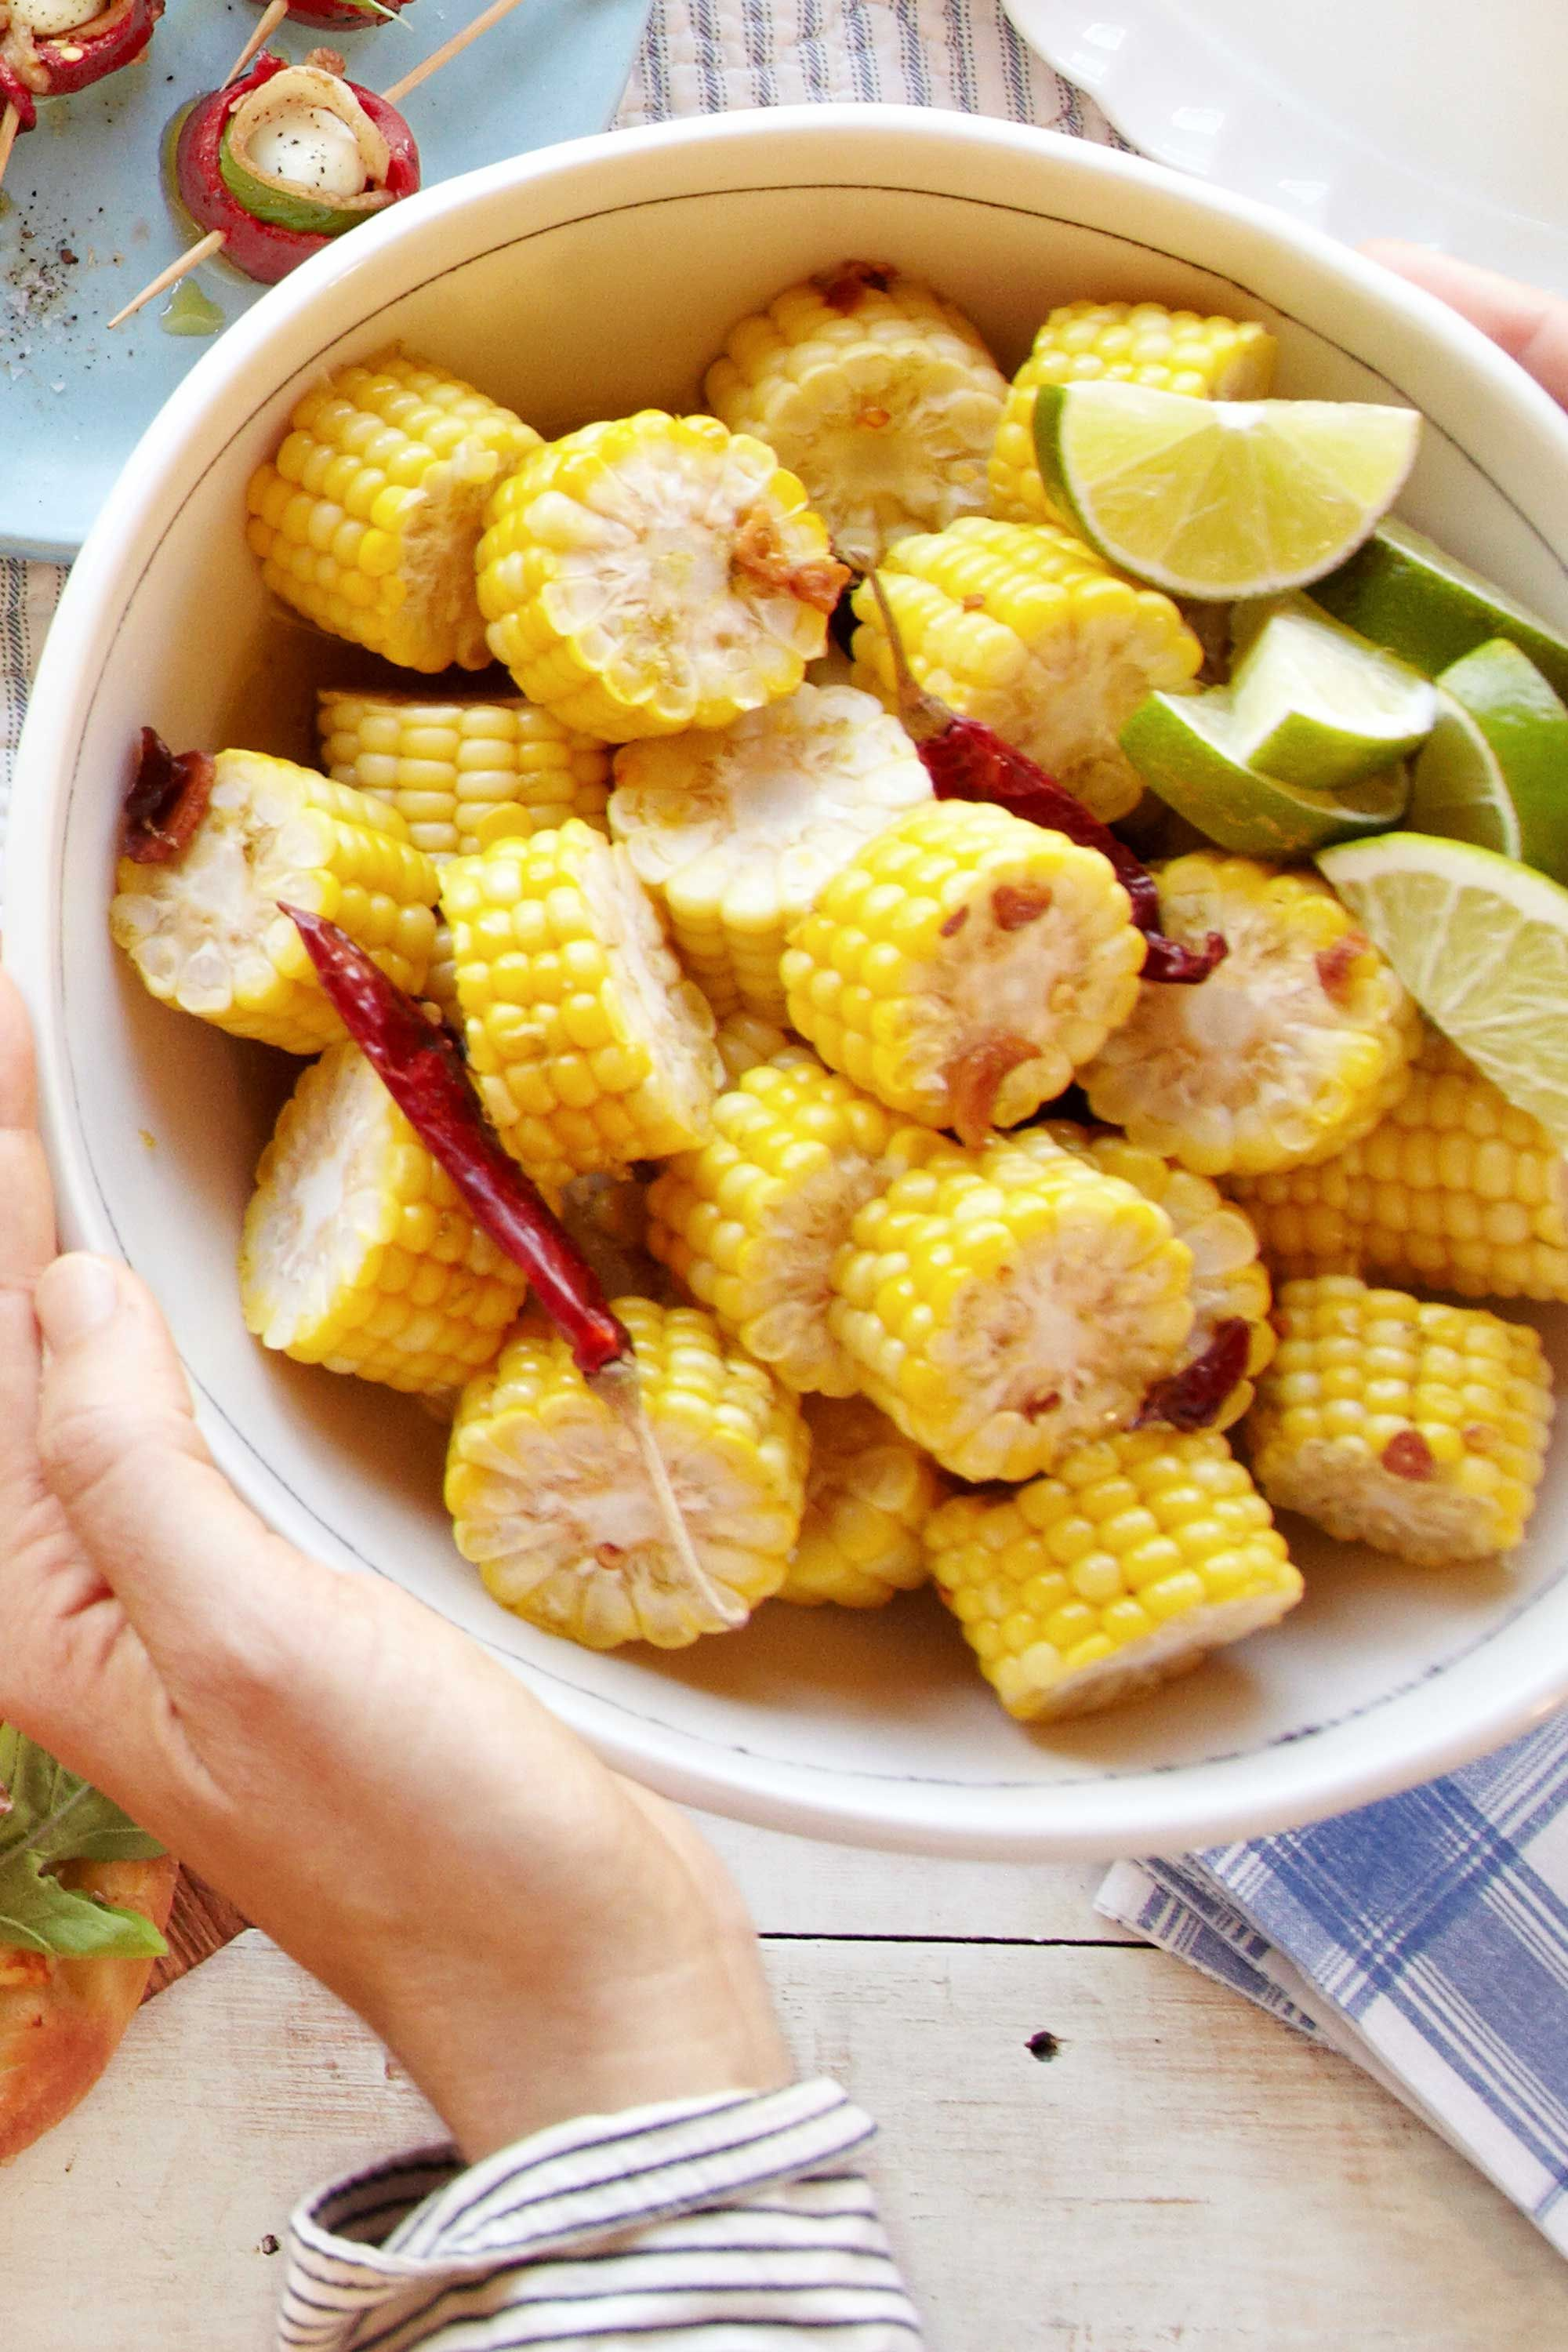 78 Summer Picnic Recipes Easy Food Ideas For A Summer Picnic